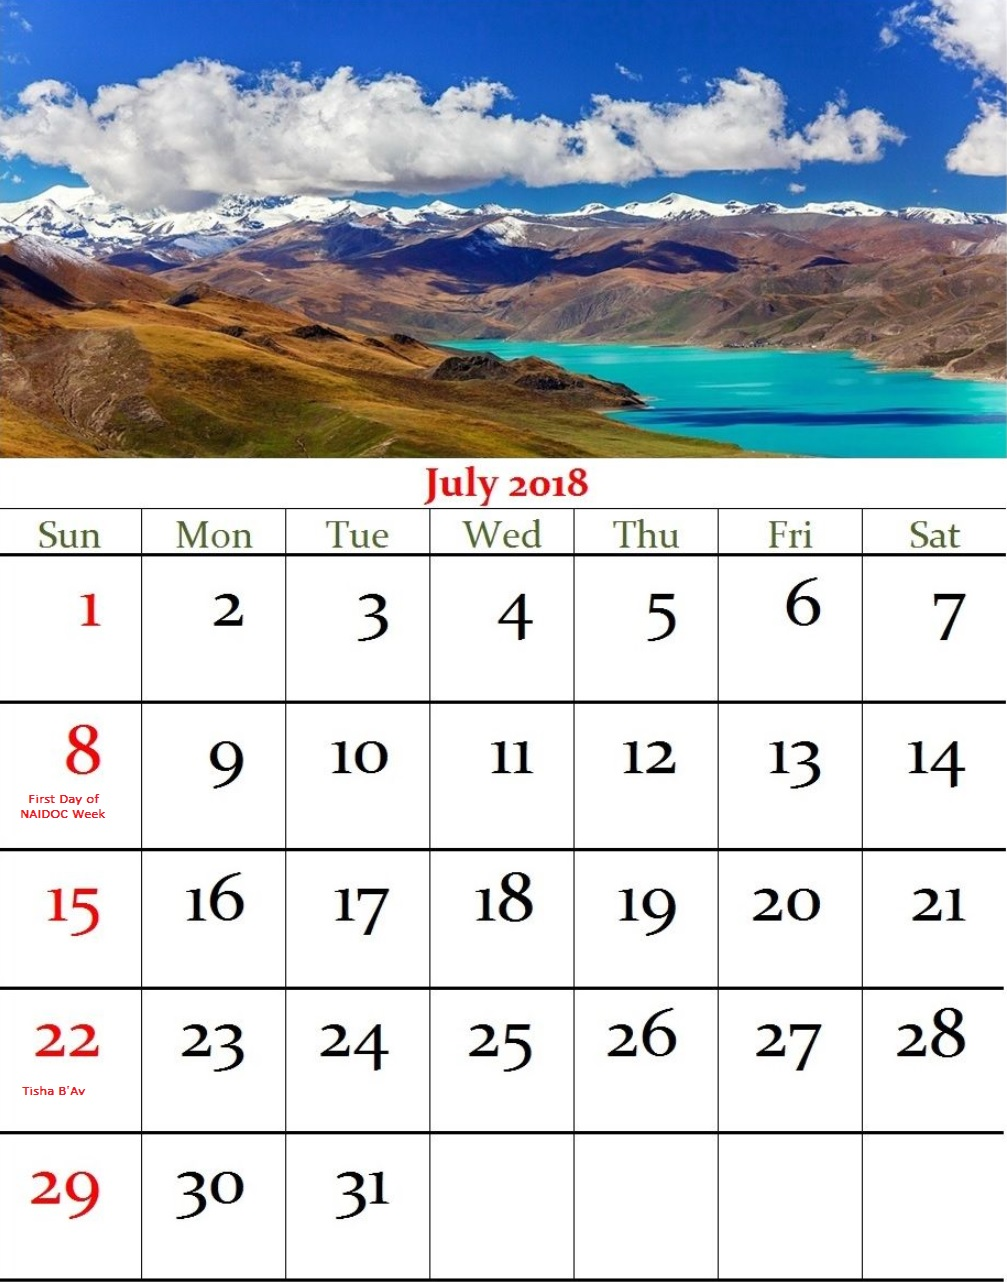 July 2018 Holiday Wall Calendar For Australia